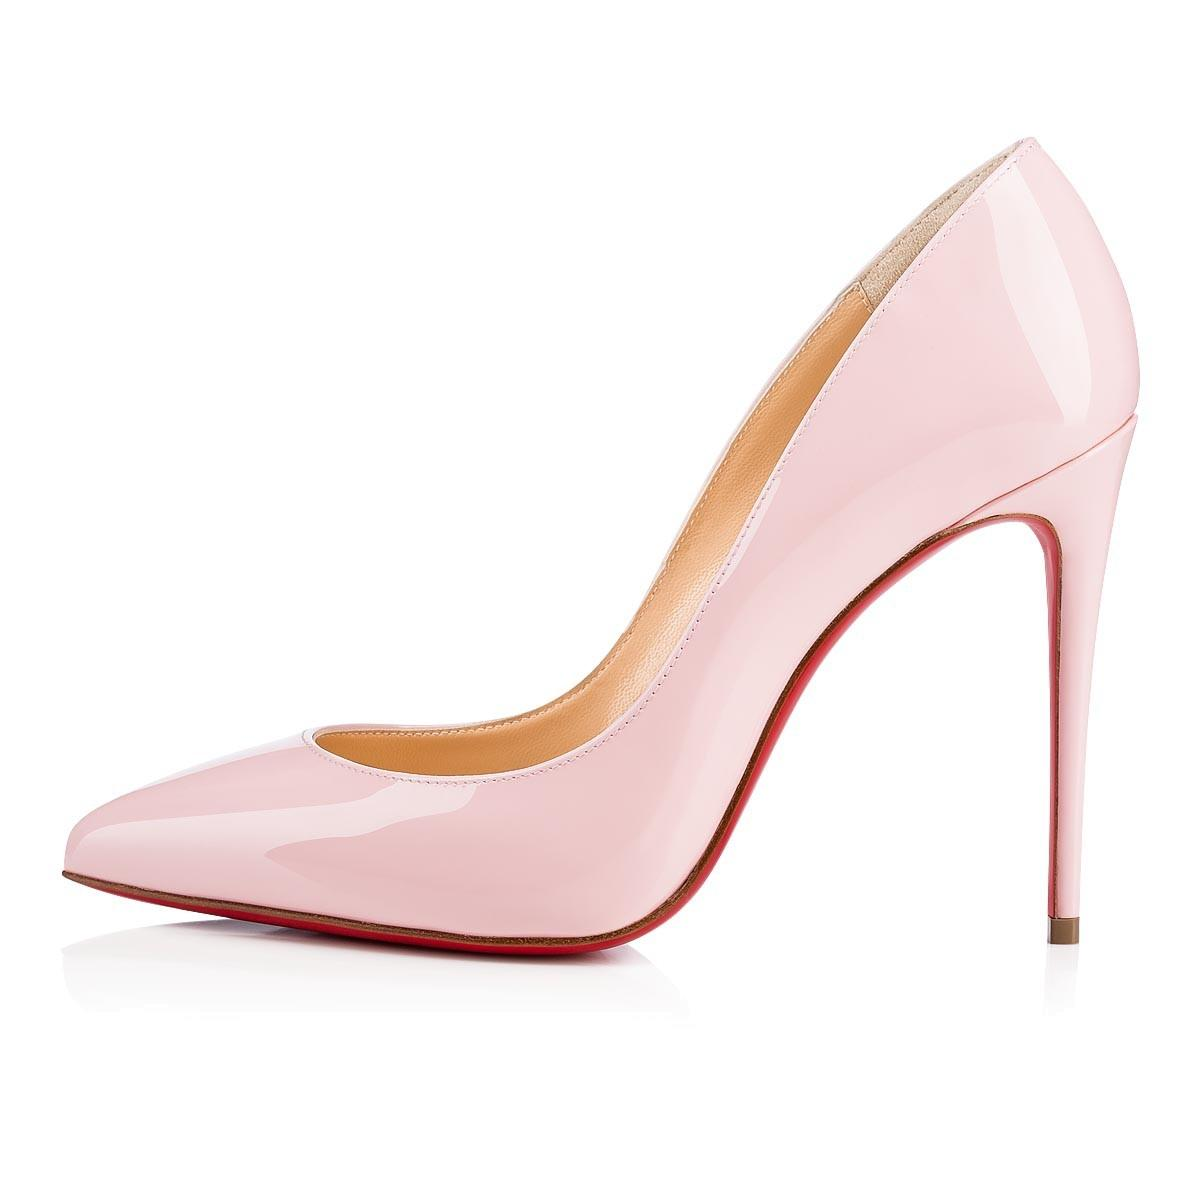 christian louboutin pigalle follies pink